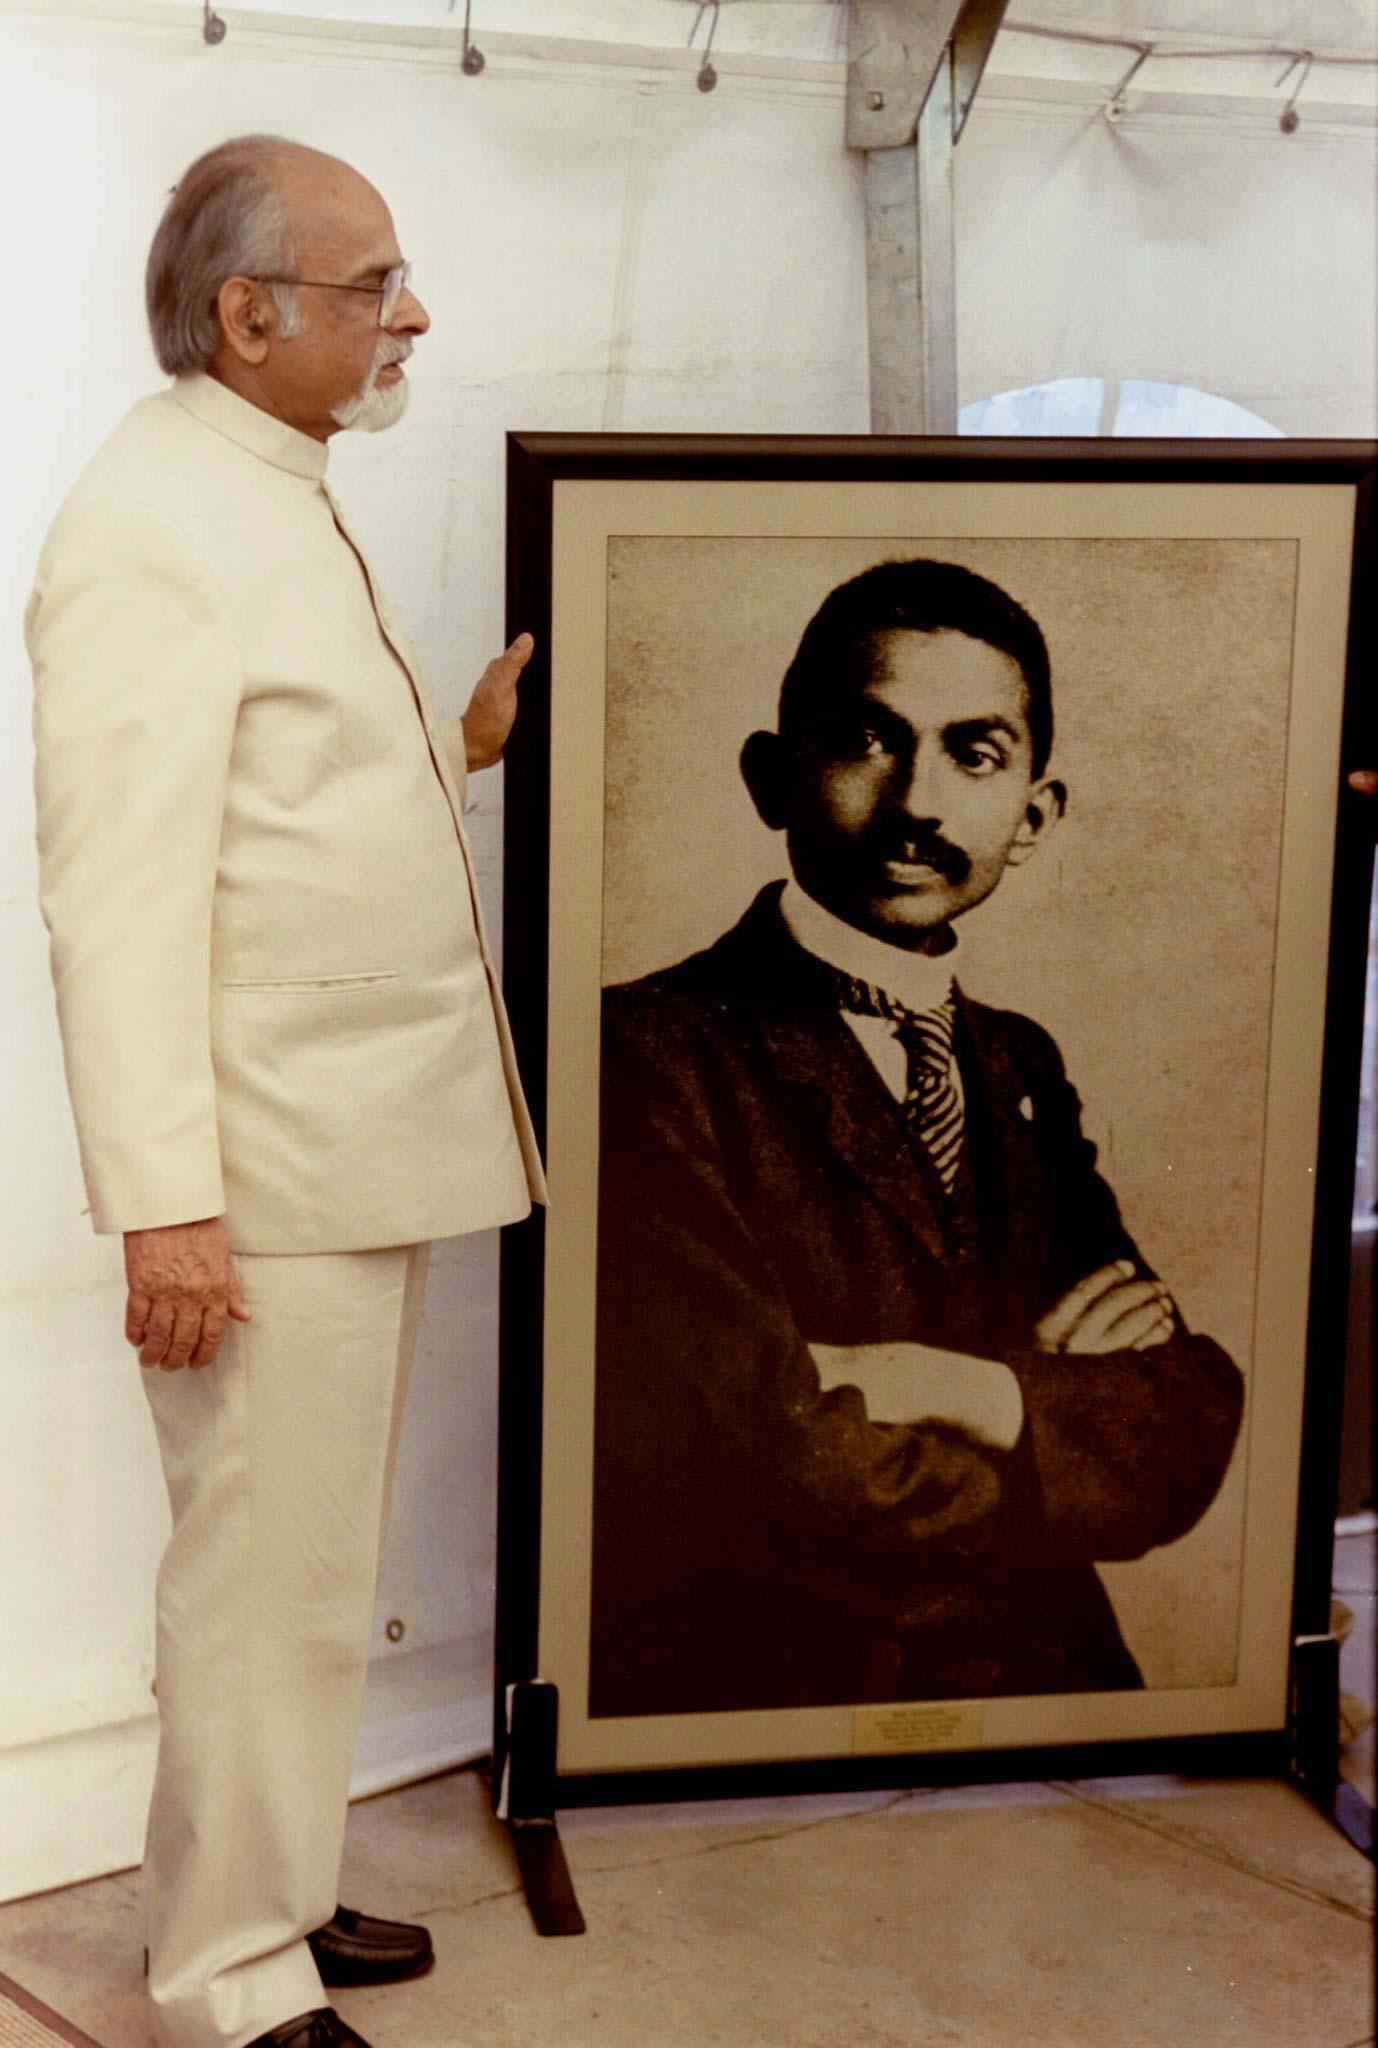 Indian Prime Minister Inder Kumar stands next to a picture of Mahatma Gandhi at the Johannesburg prison